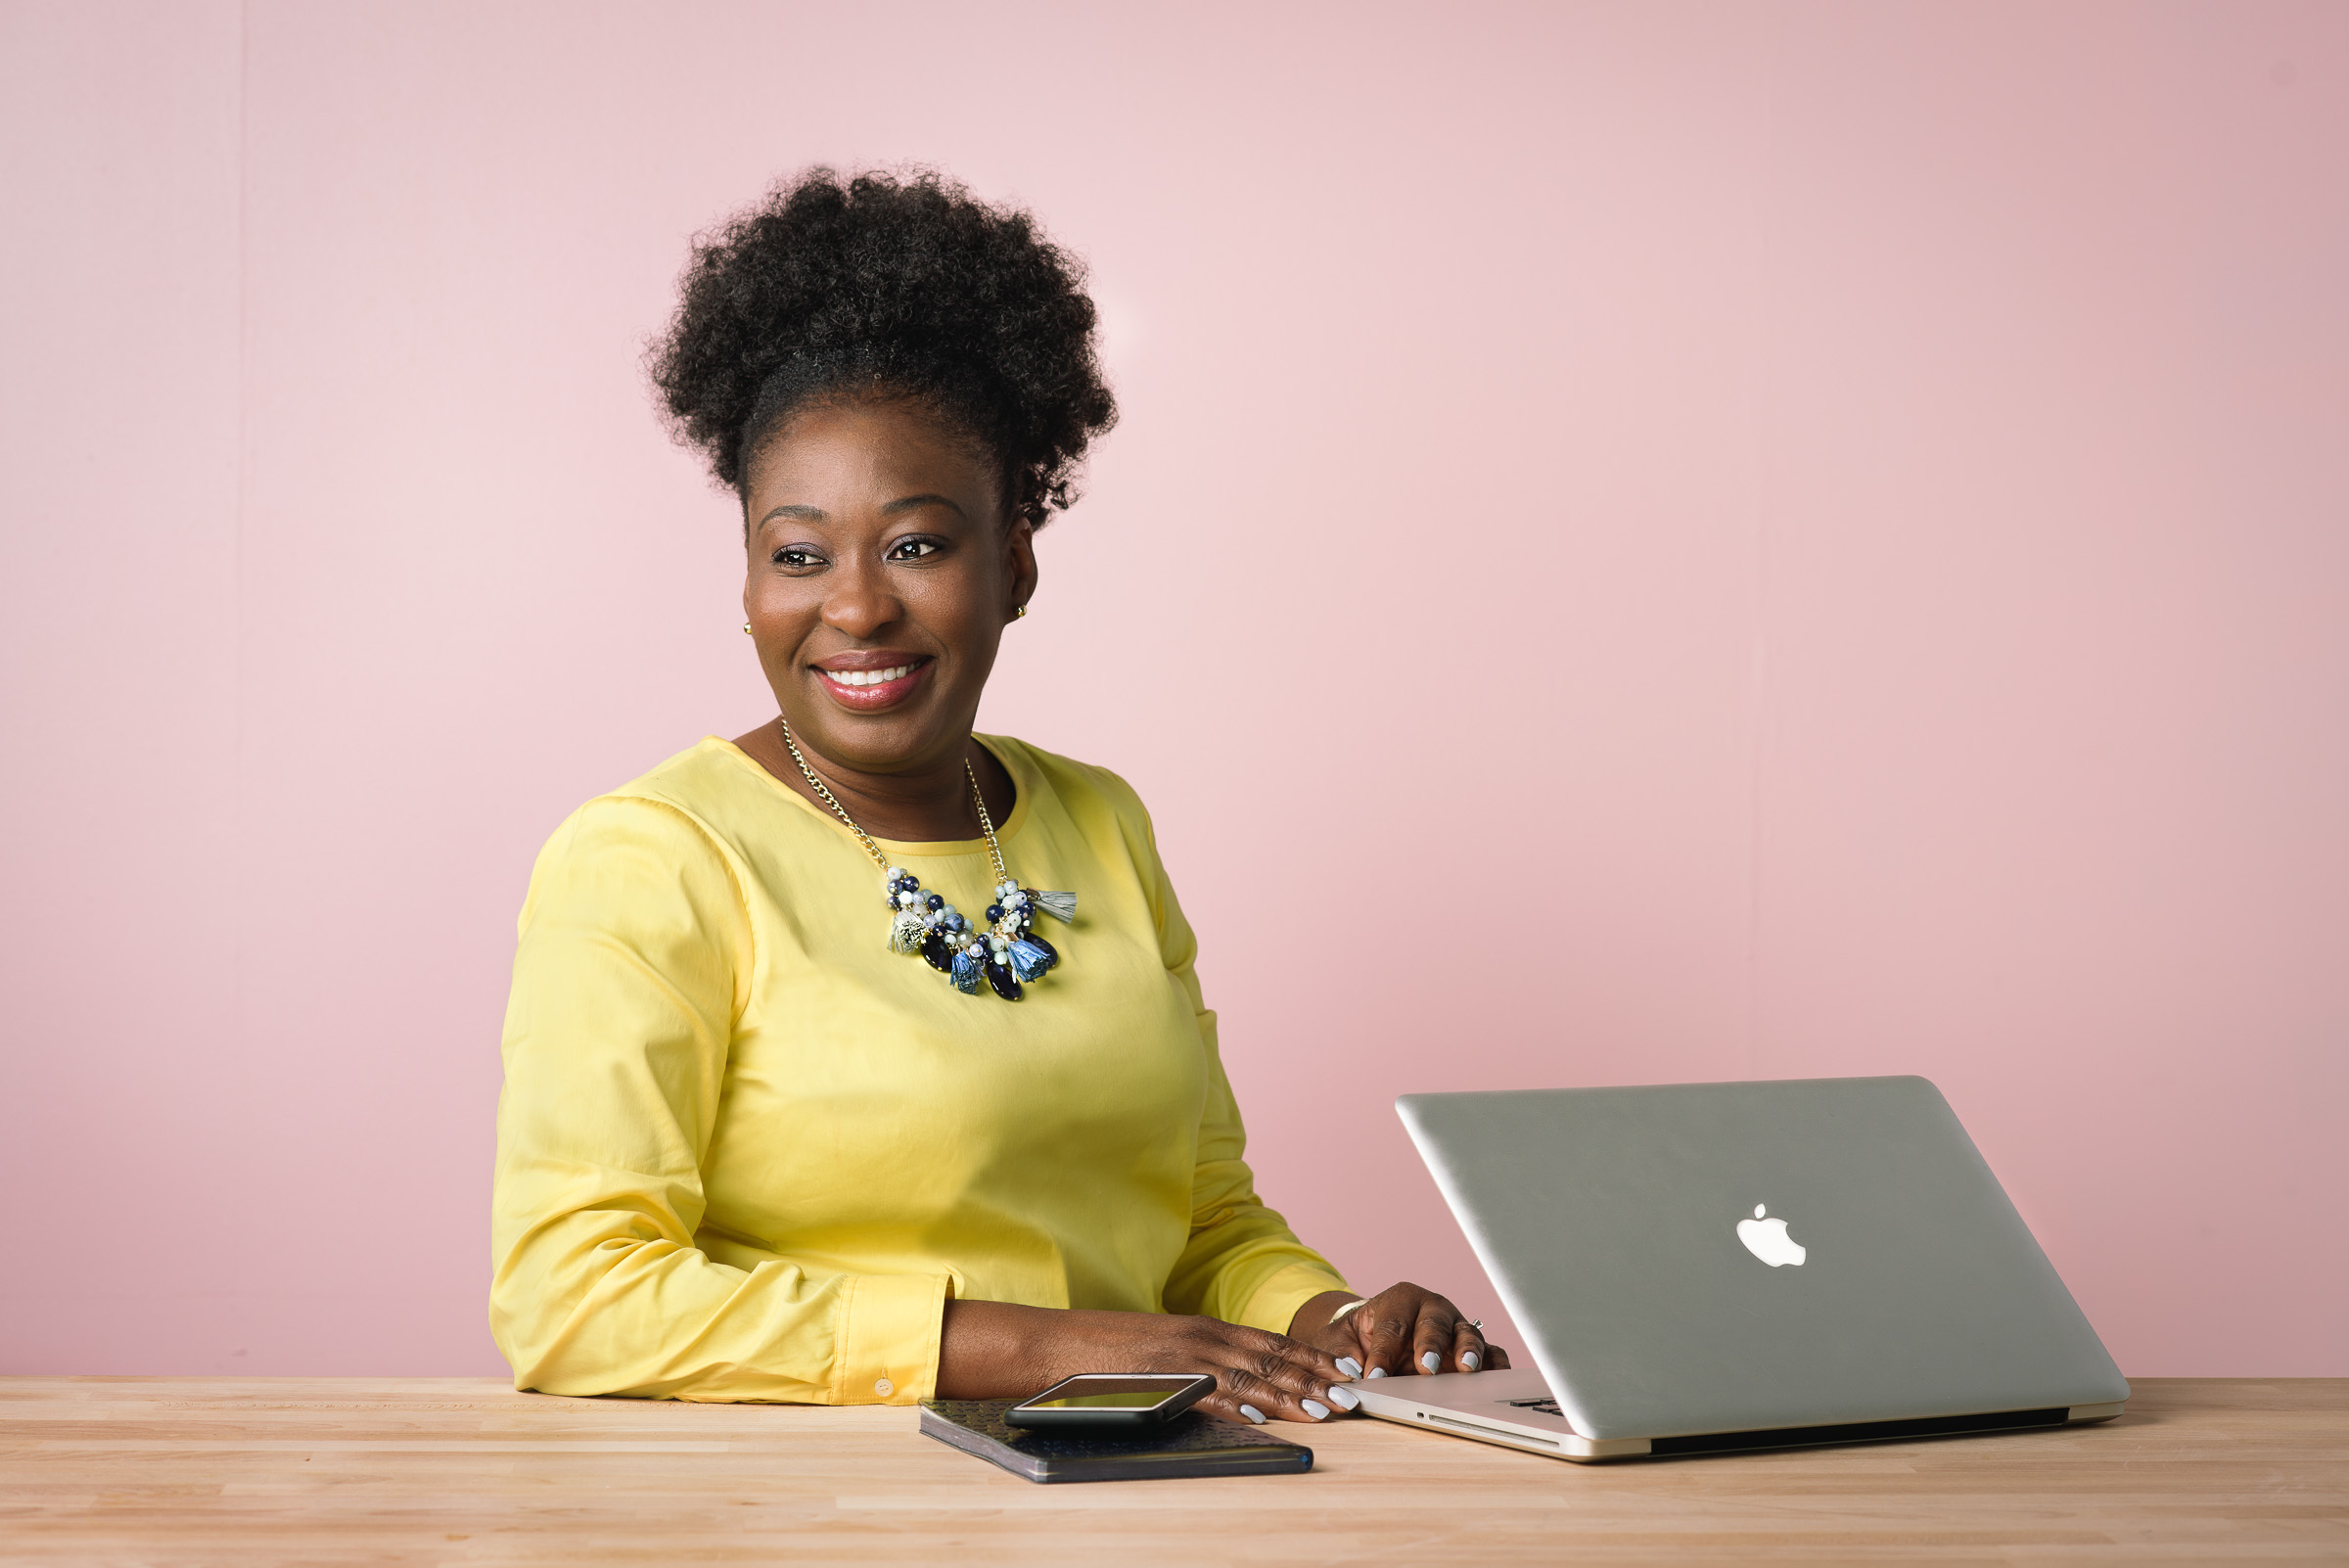 Corporate diversity portrait - Ezinne Udezue in yellow shirt against a pink backdrop.